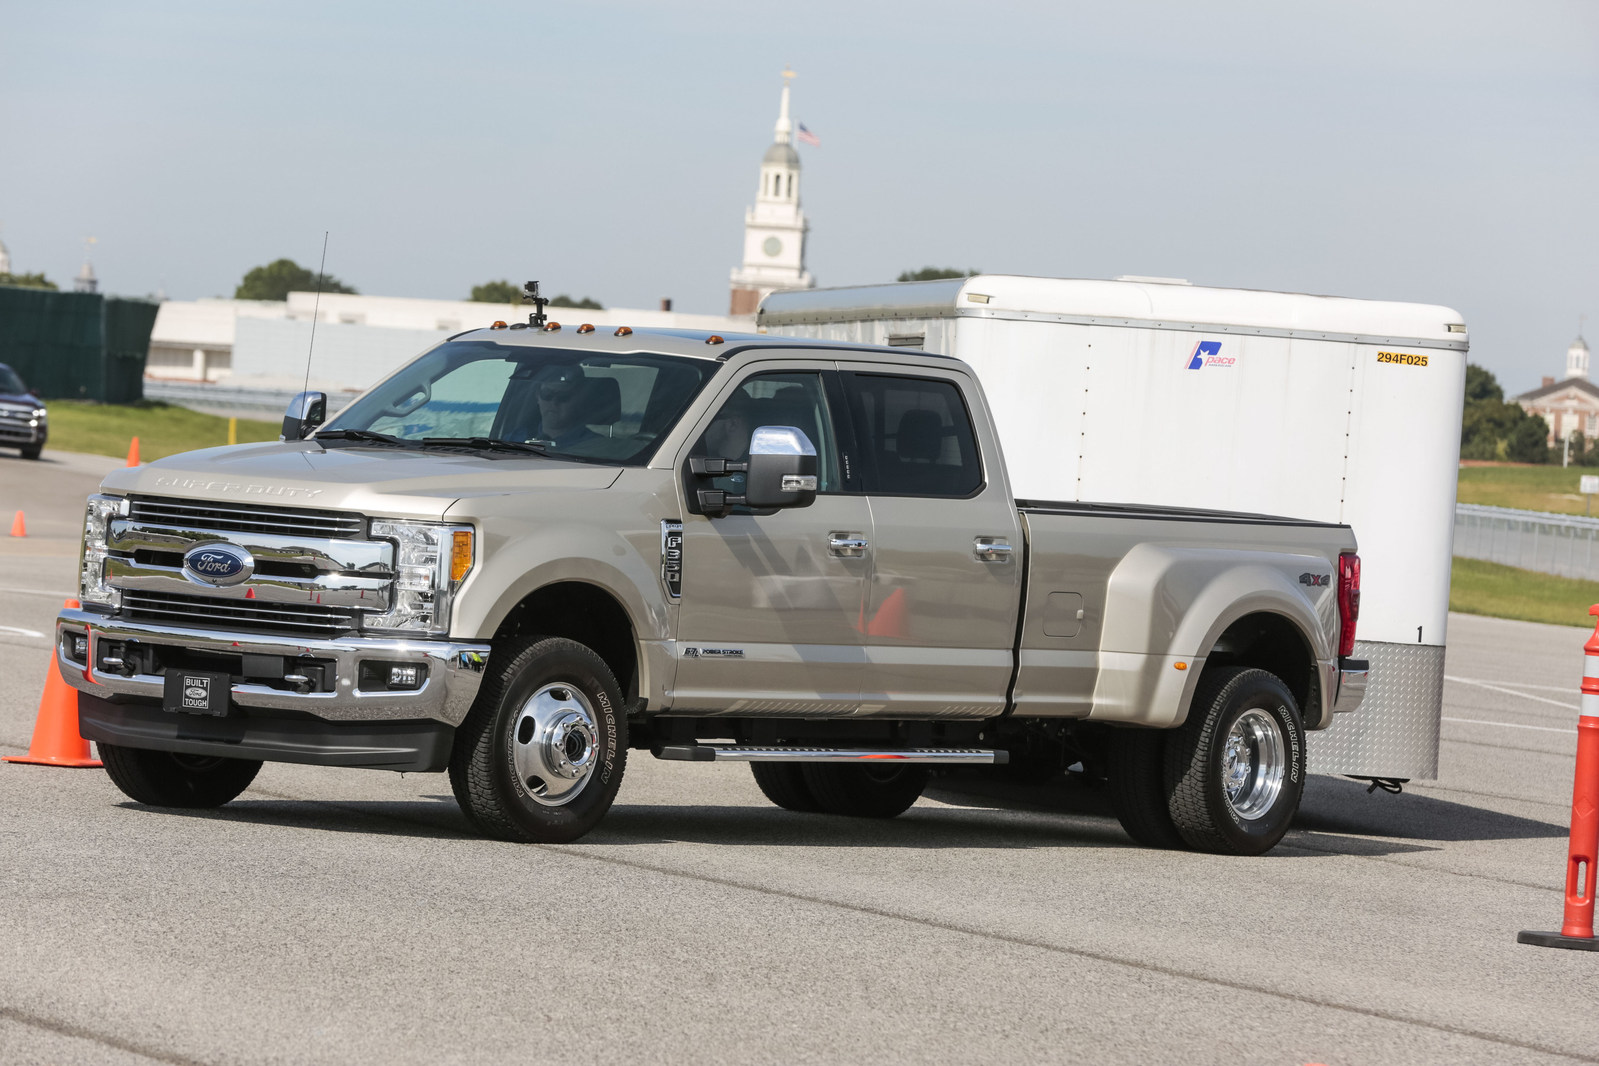 Exclusive Driver Assist System On Ford F Series Trucks Up For Pace Magna Announced Today That Its Electronic Assistance Available Pickups Has Been Named As A Finalist The 2018 Automotive